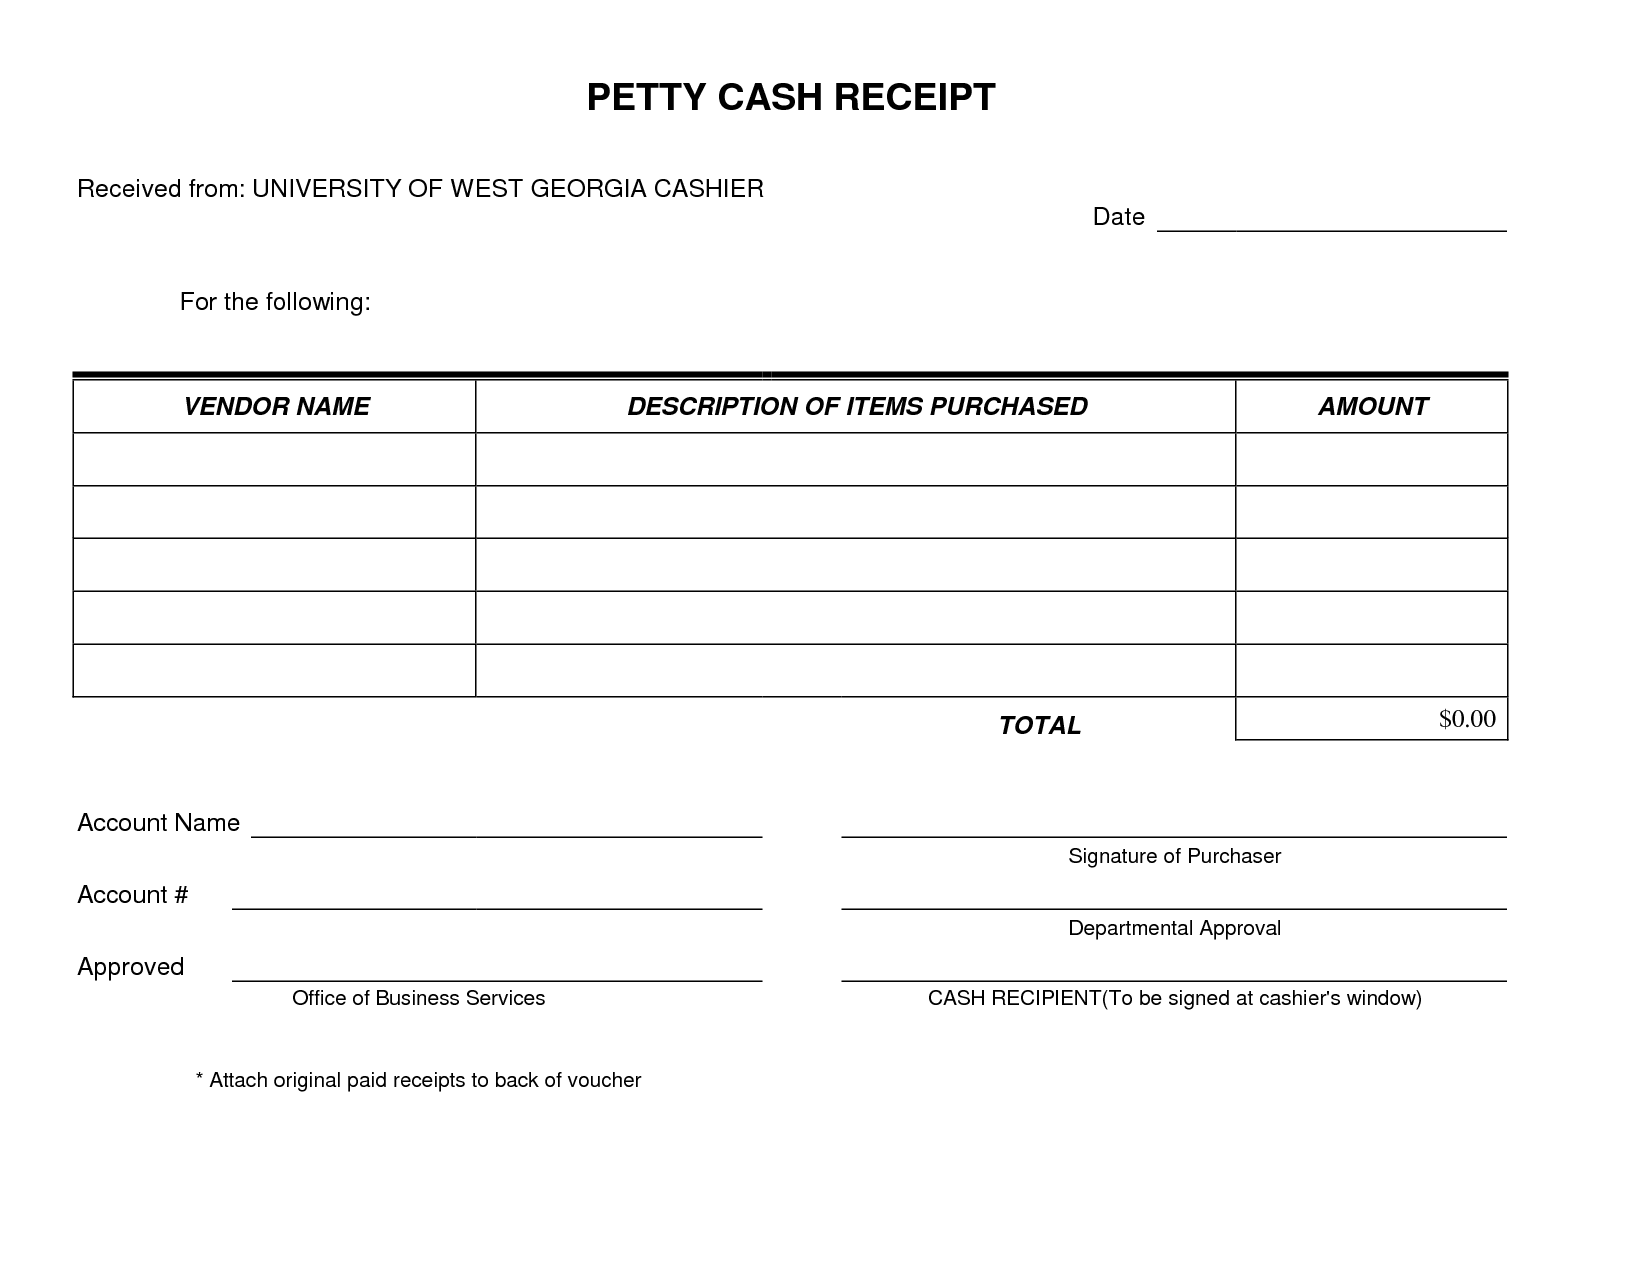 Petty Cash Receipt Form Template Very Simple And Easy To